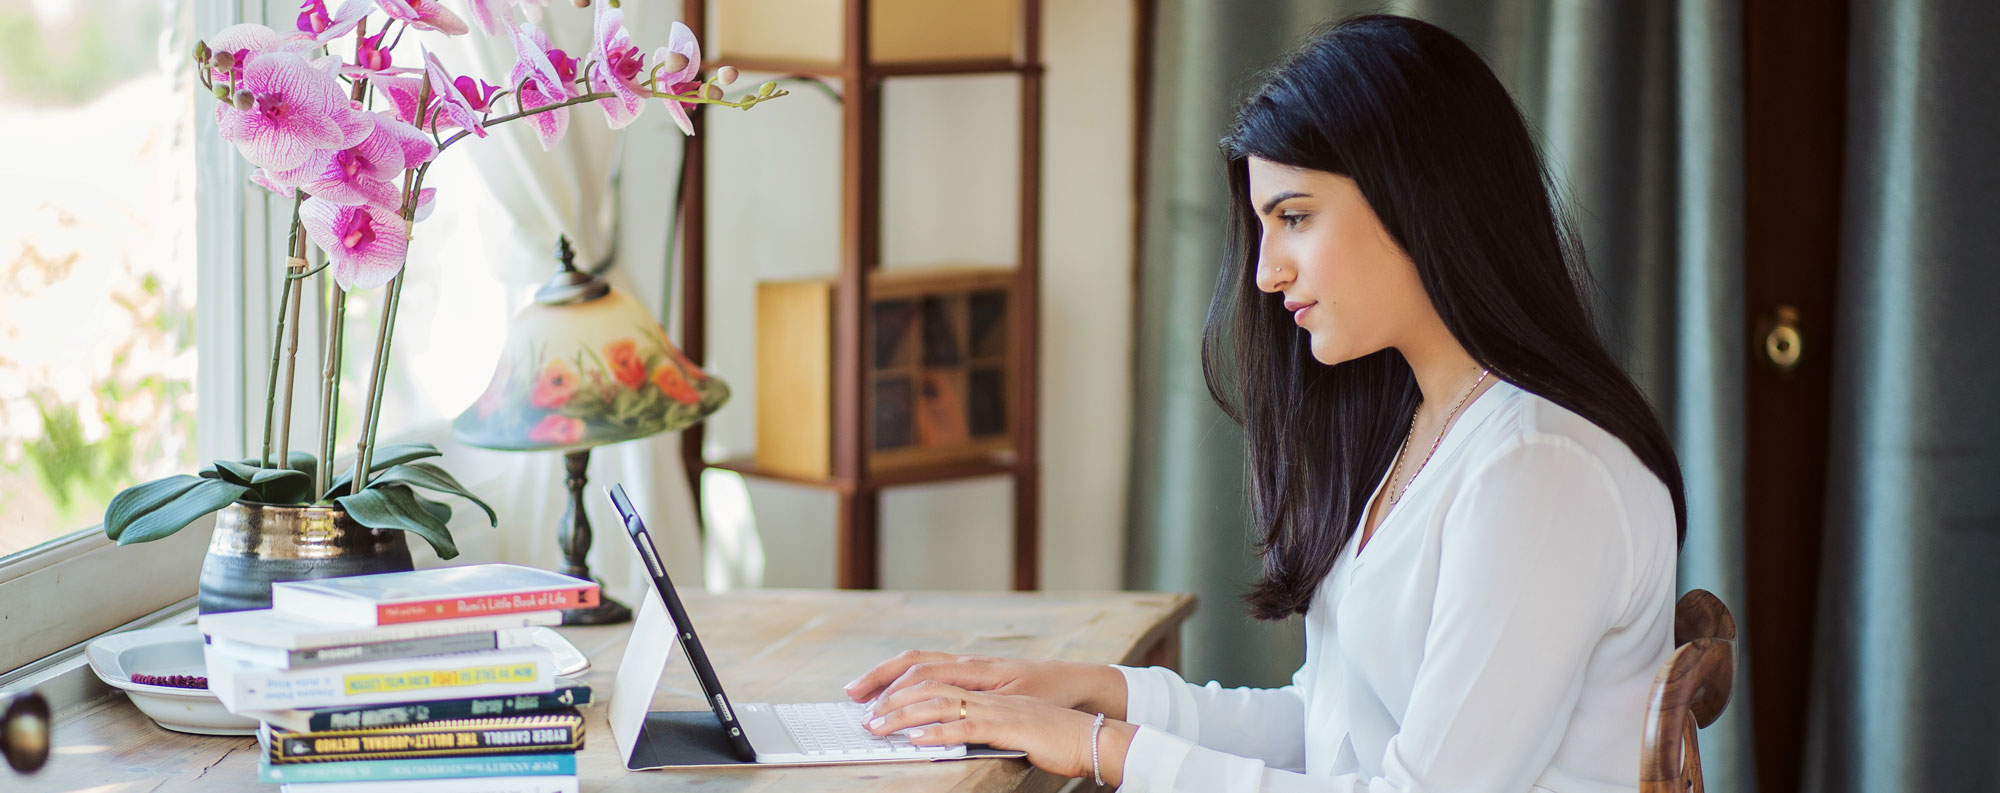 A photo of therapist Sakina Issa working at her computer.